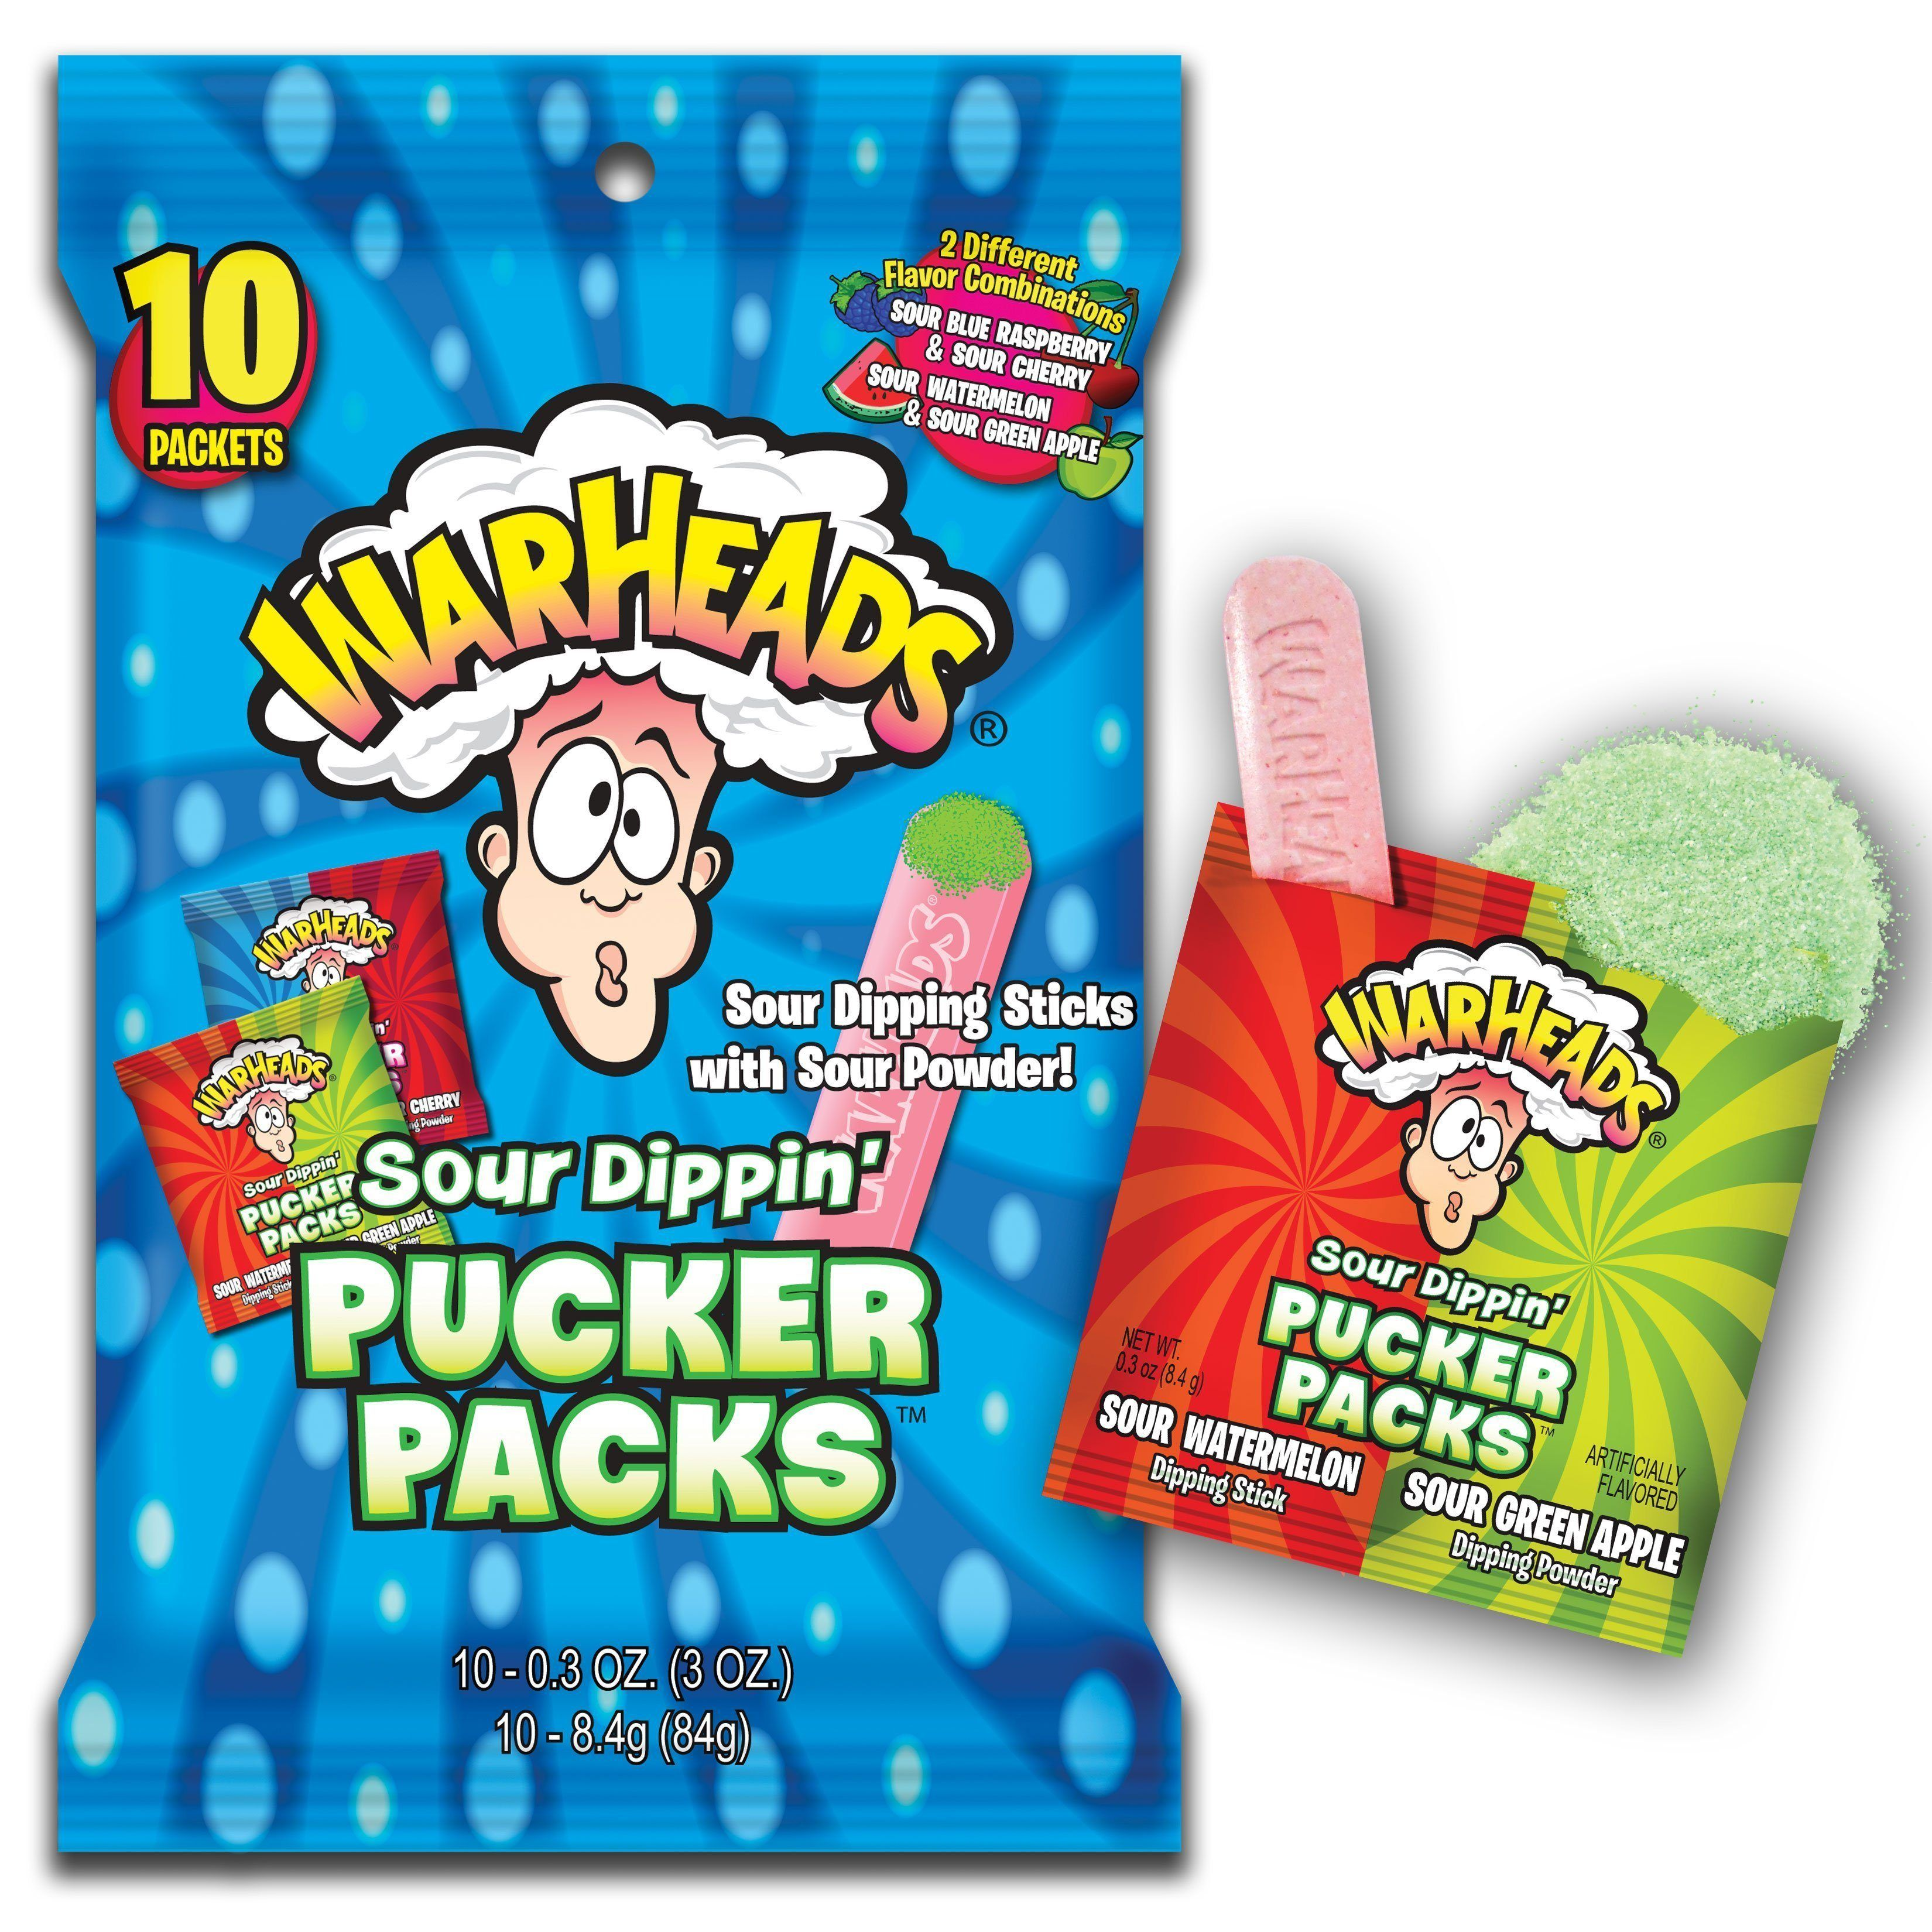 Warheads Sour Pucker Packs Beautiful Art Love Cute Bhfyp Birthday Cake Candy Chocolate Coffee Cottoncan Sour Candy Online Candy Store Online Candy